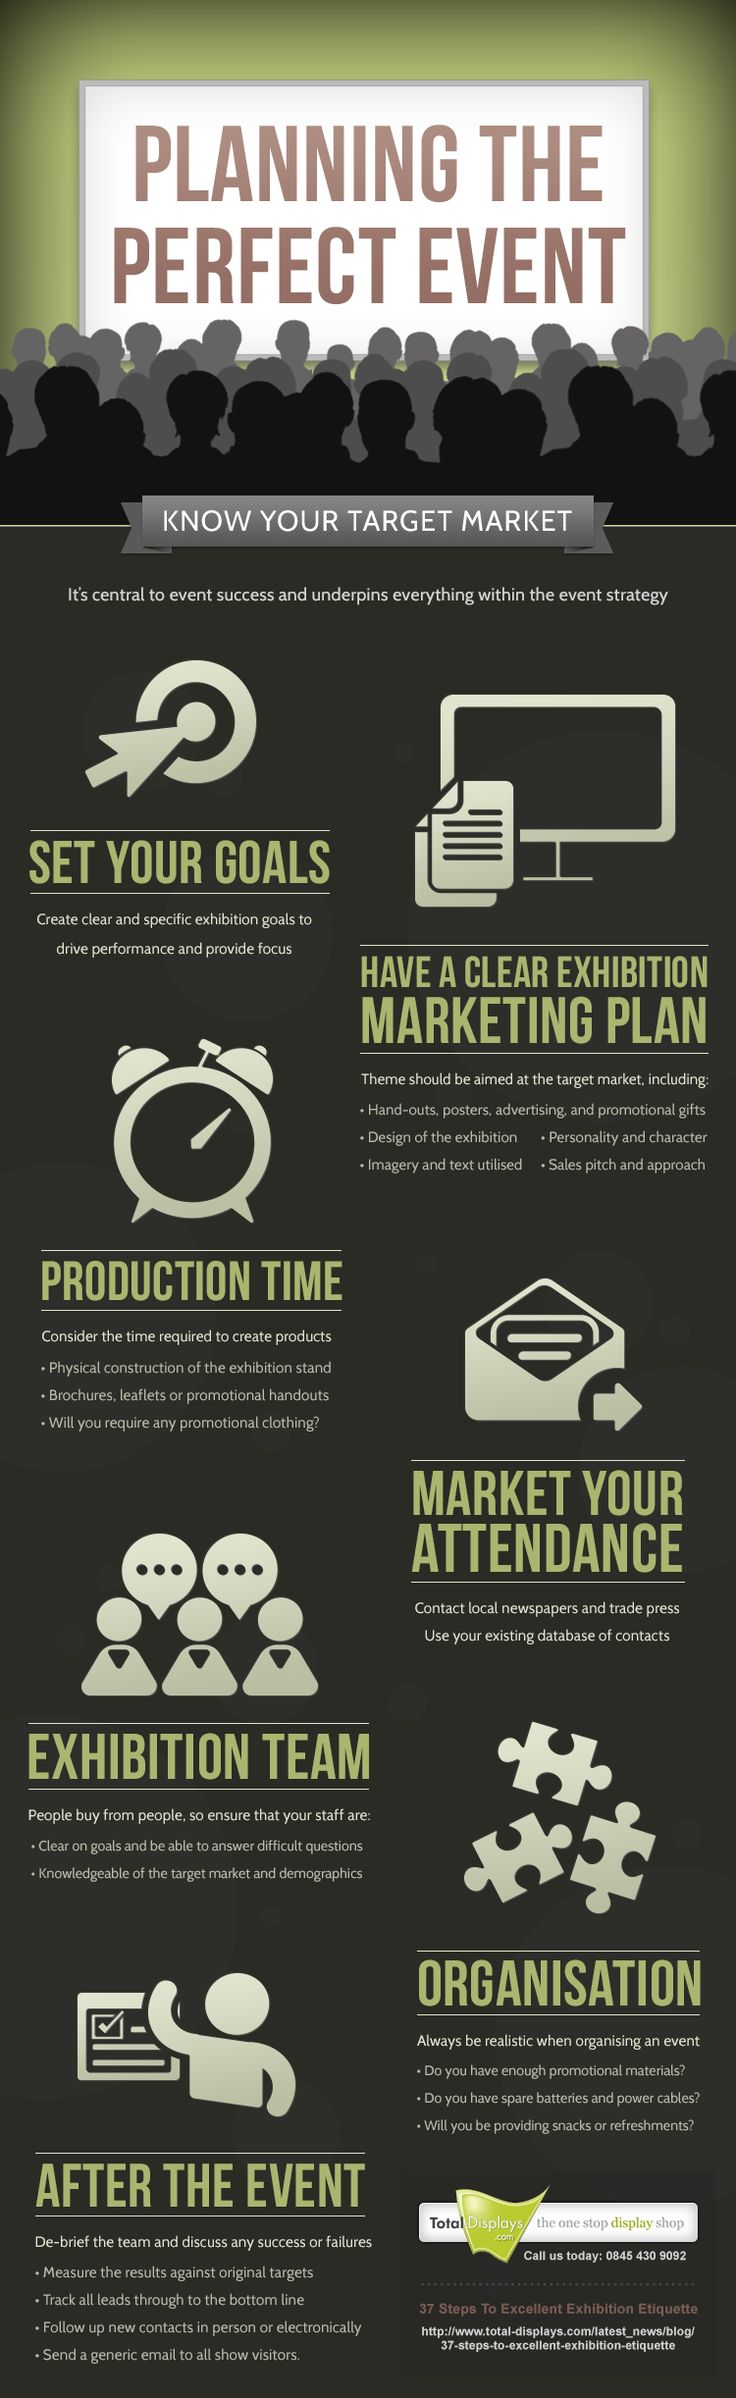 Infographic: Planning The Perfect Event - Event Industry News